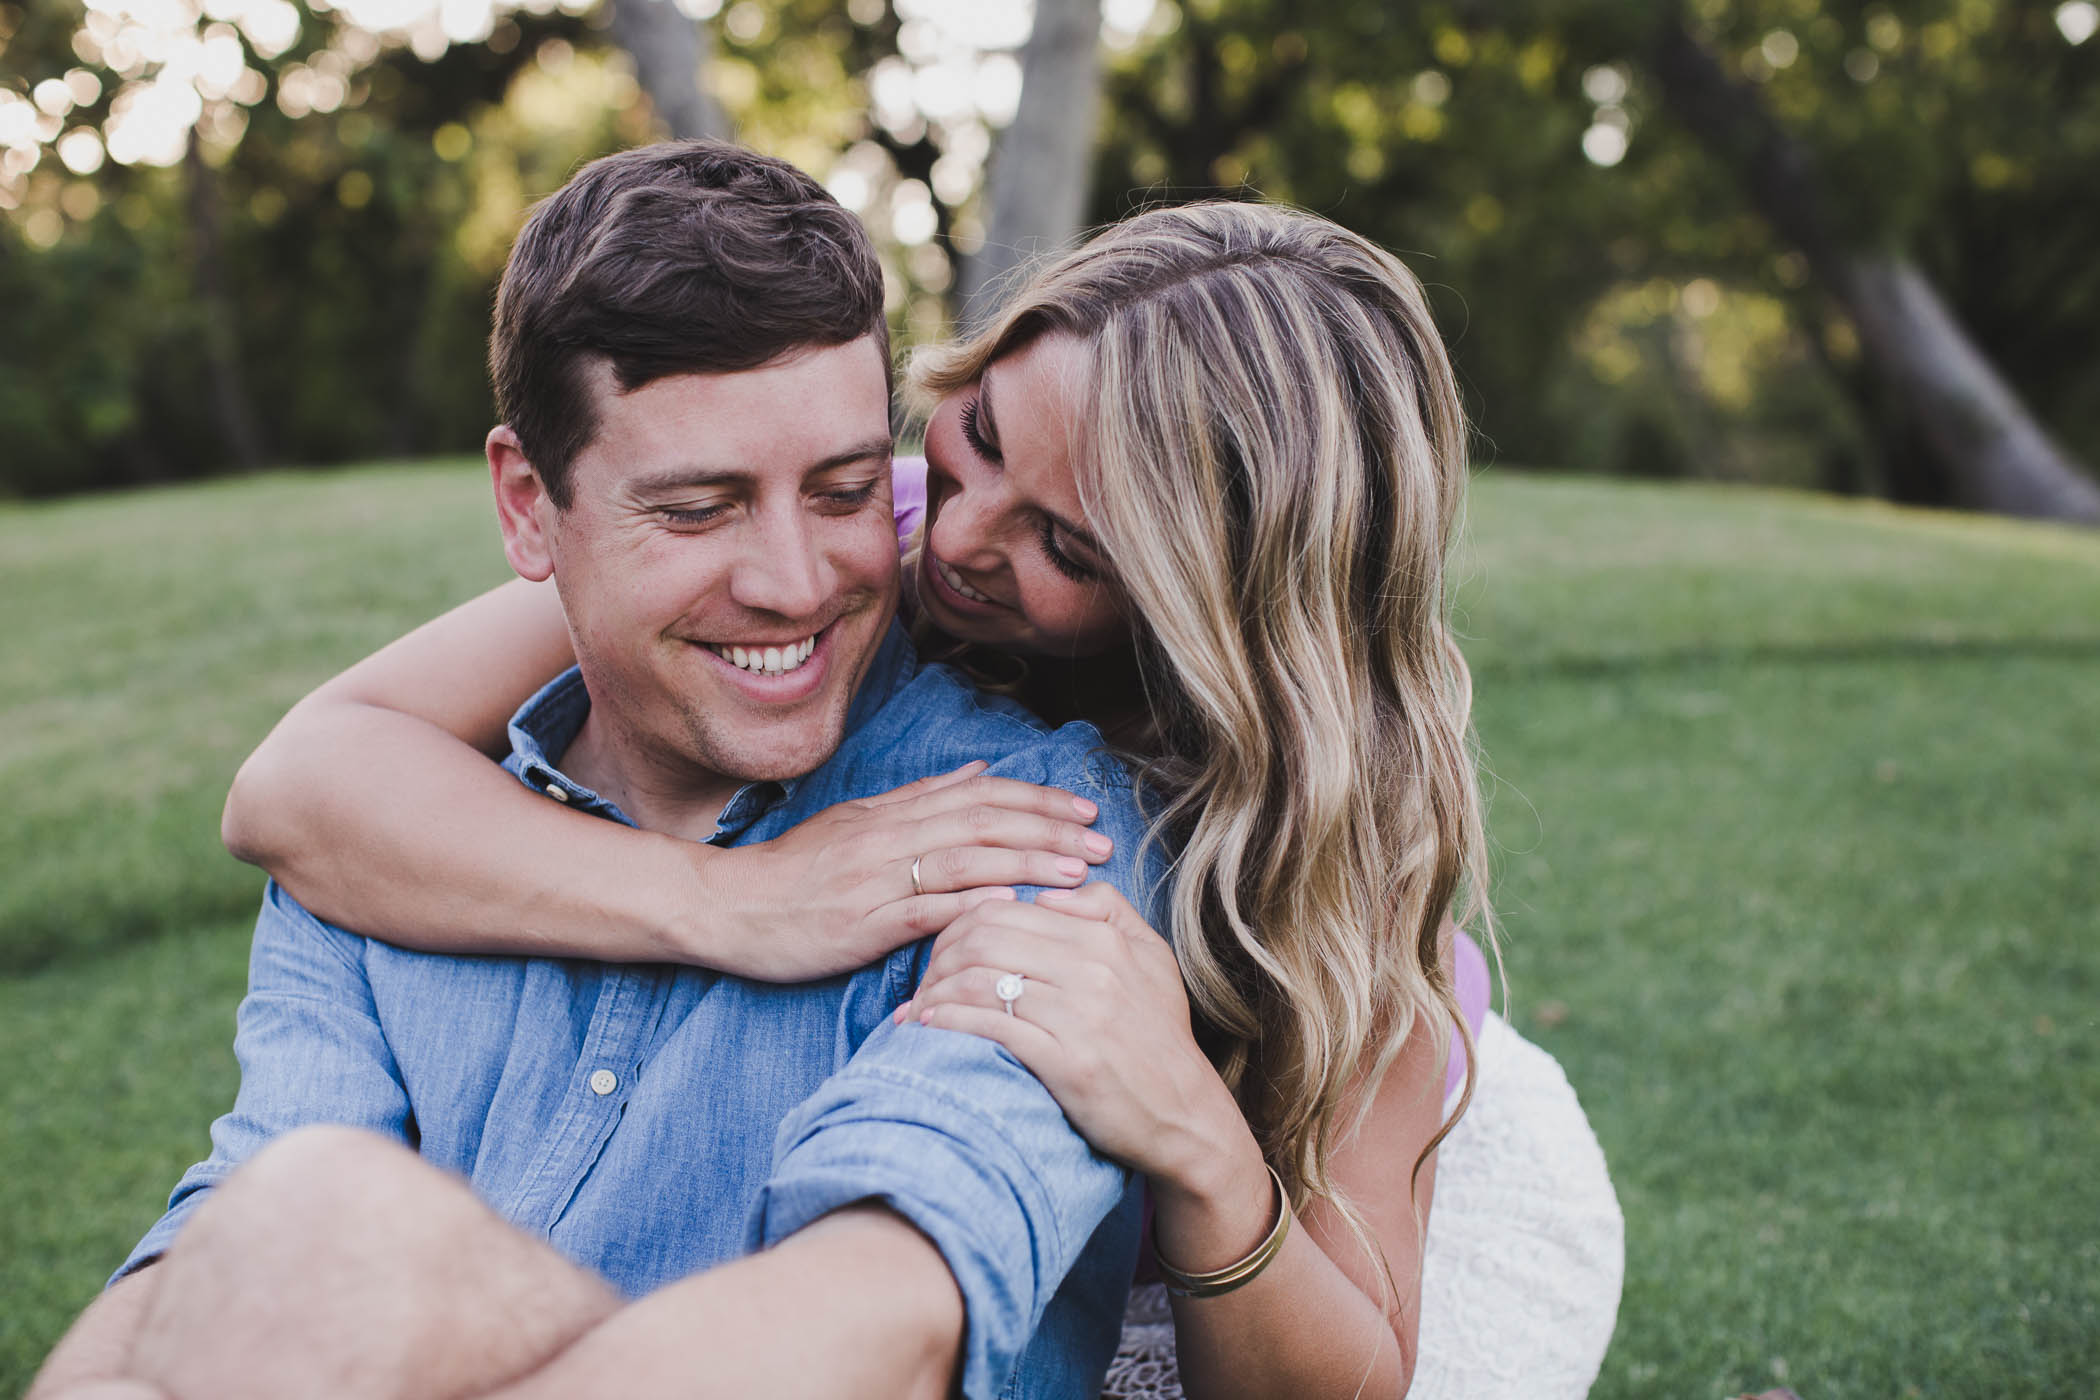 AVH_Photography_upper_bidwell_park_engagement_photography_chico_california_spring_bidwell_golf_course_0025.jpg